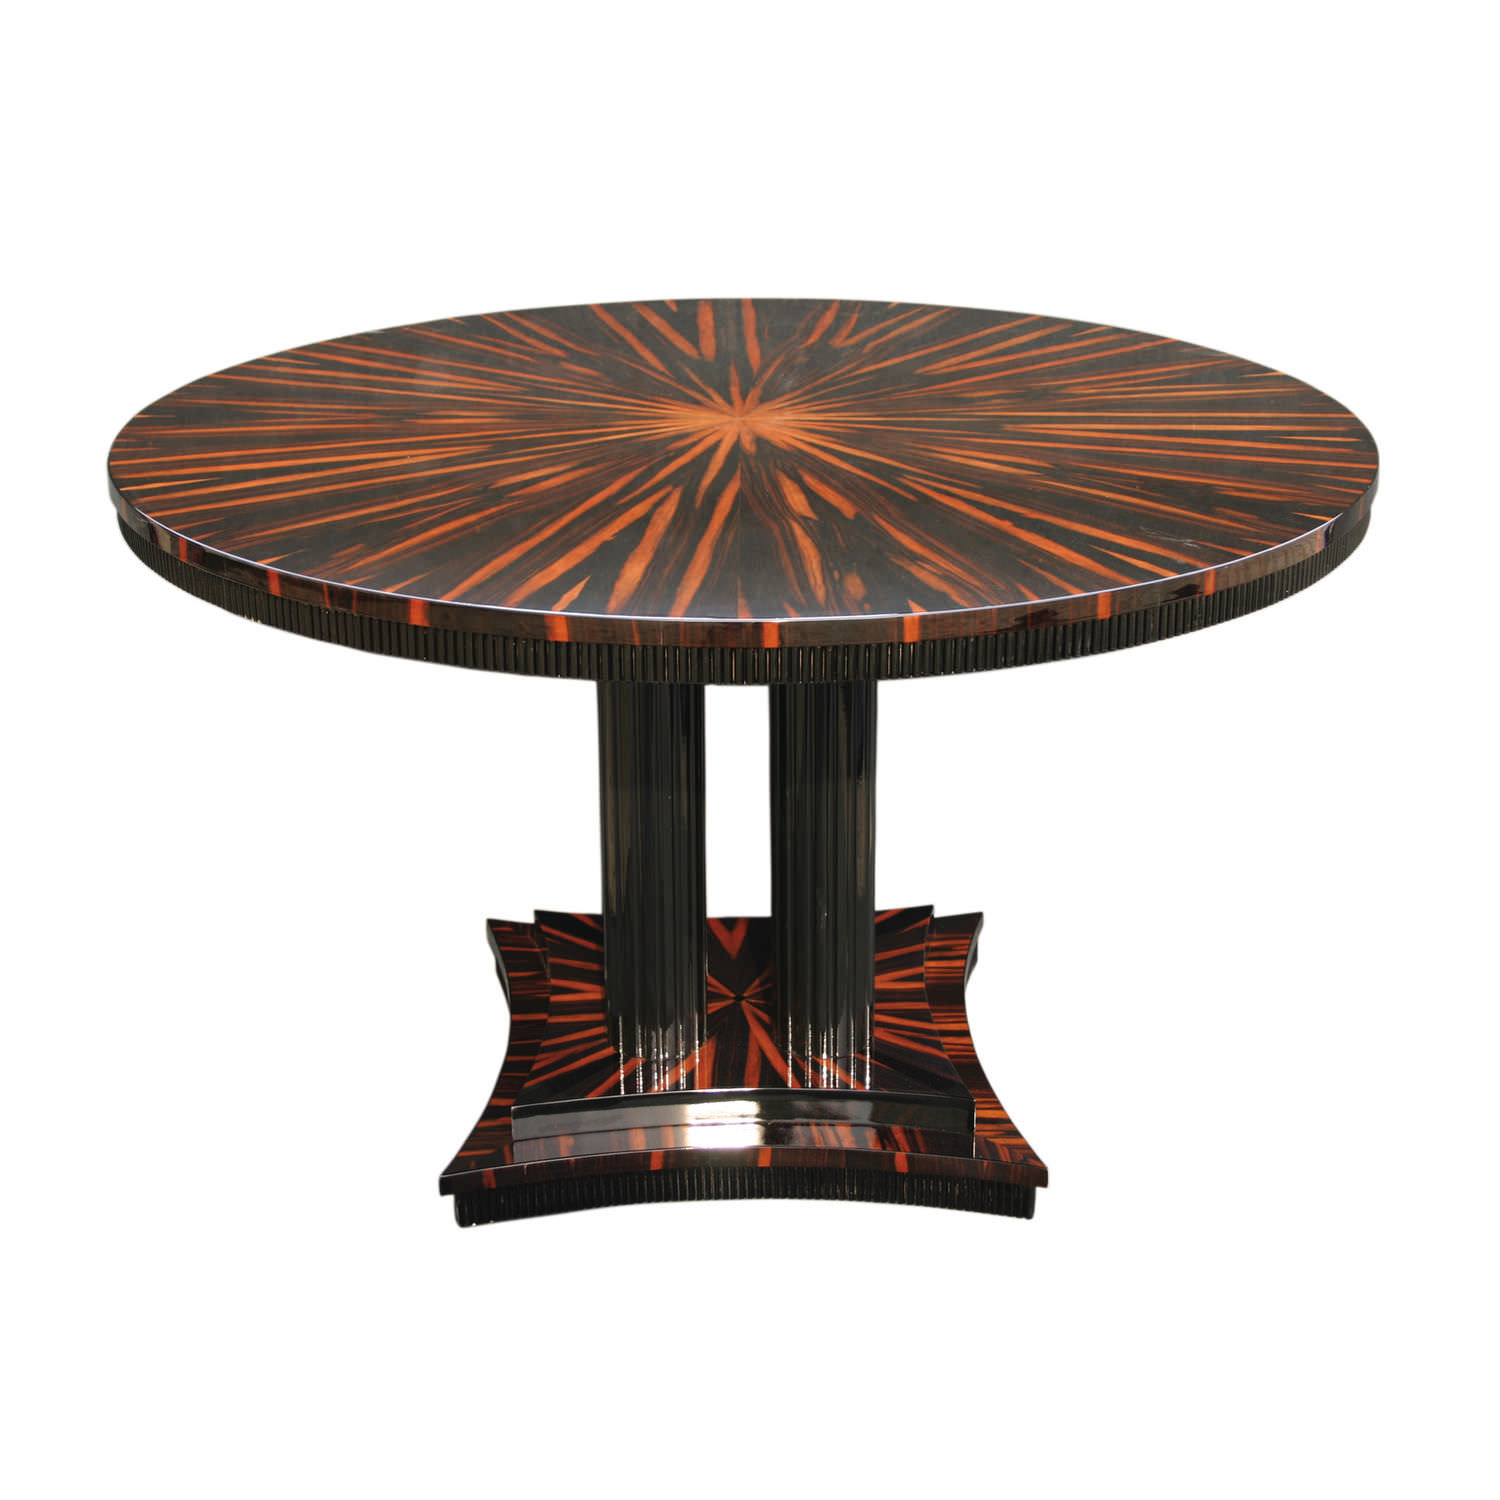 Art Deco Dining Table Wood Veneer Macassar Ebony Glossy Varnished